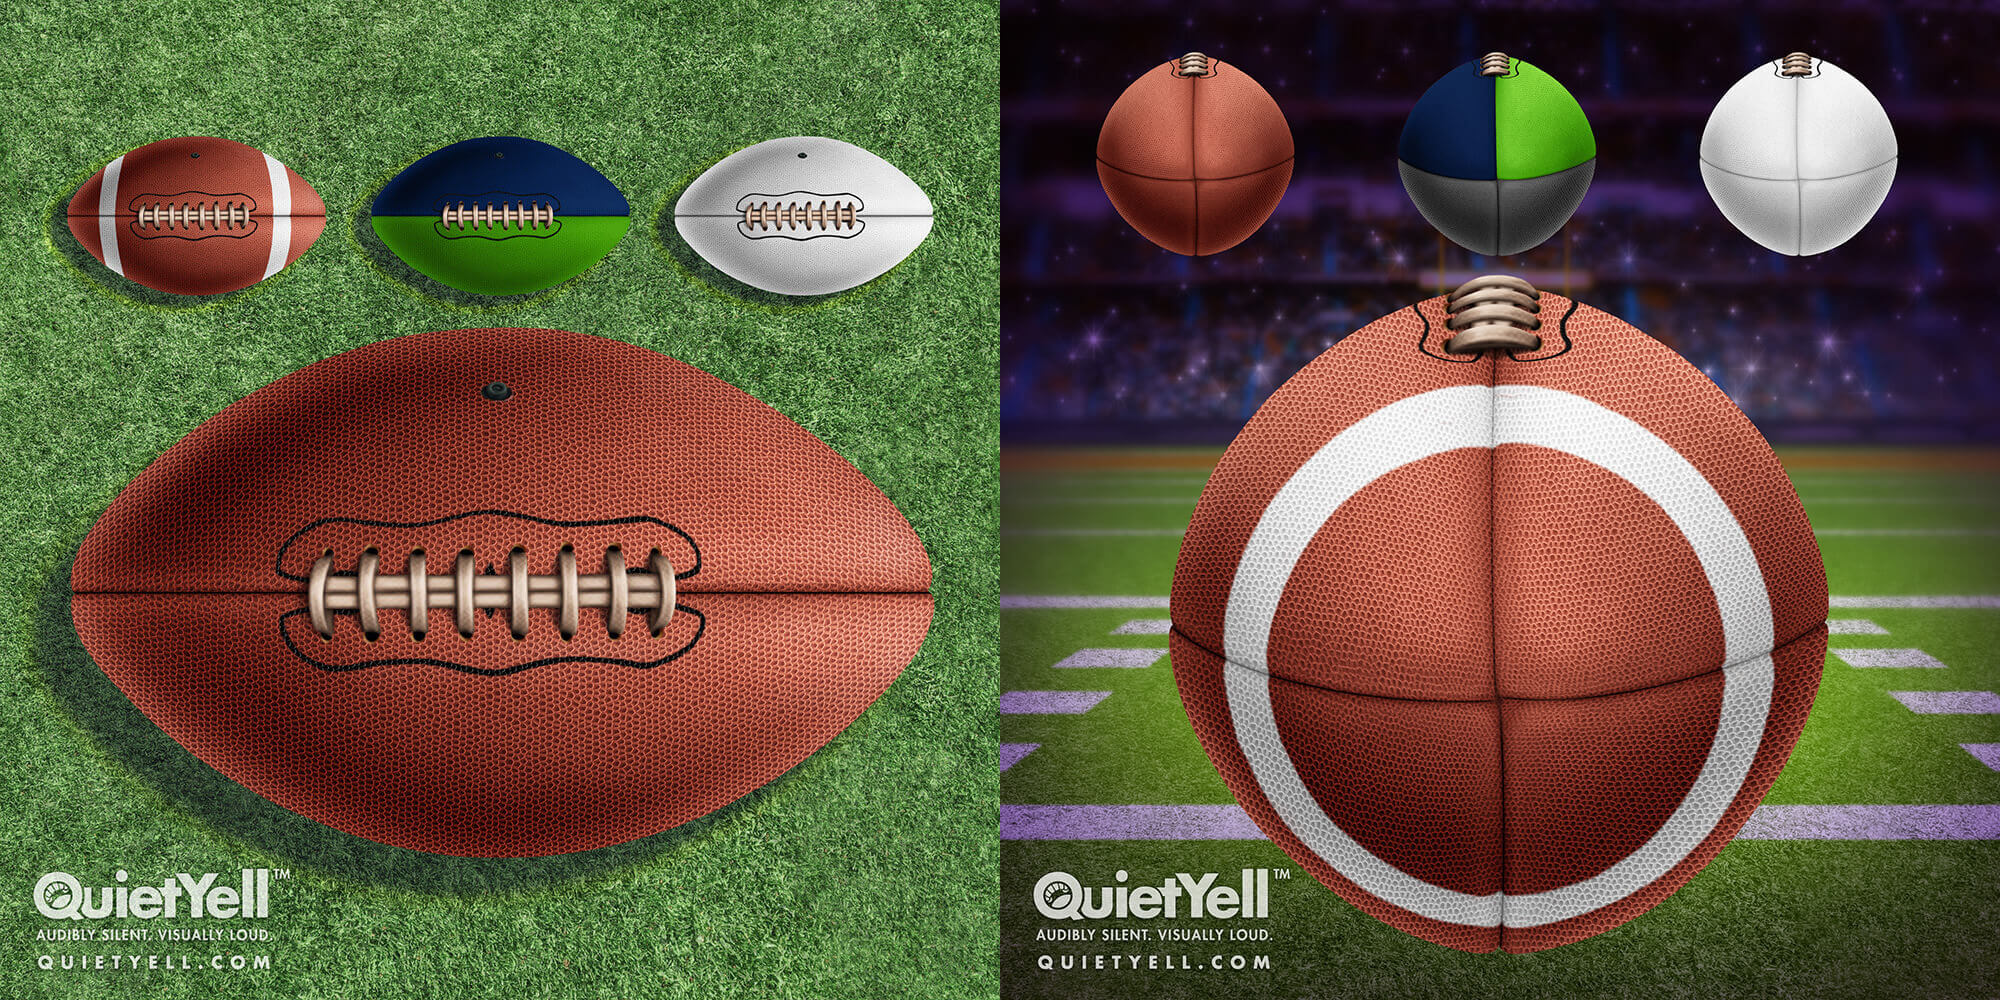 QuietYell Presents Scott Monaco's Sports (Football) Game Assets For Cataboom, All Rights Reserved | QuietYell.com and CataBoom.com